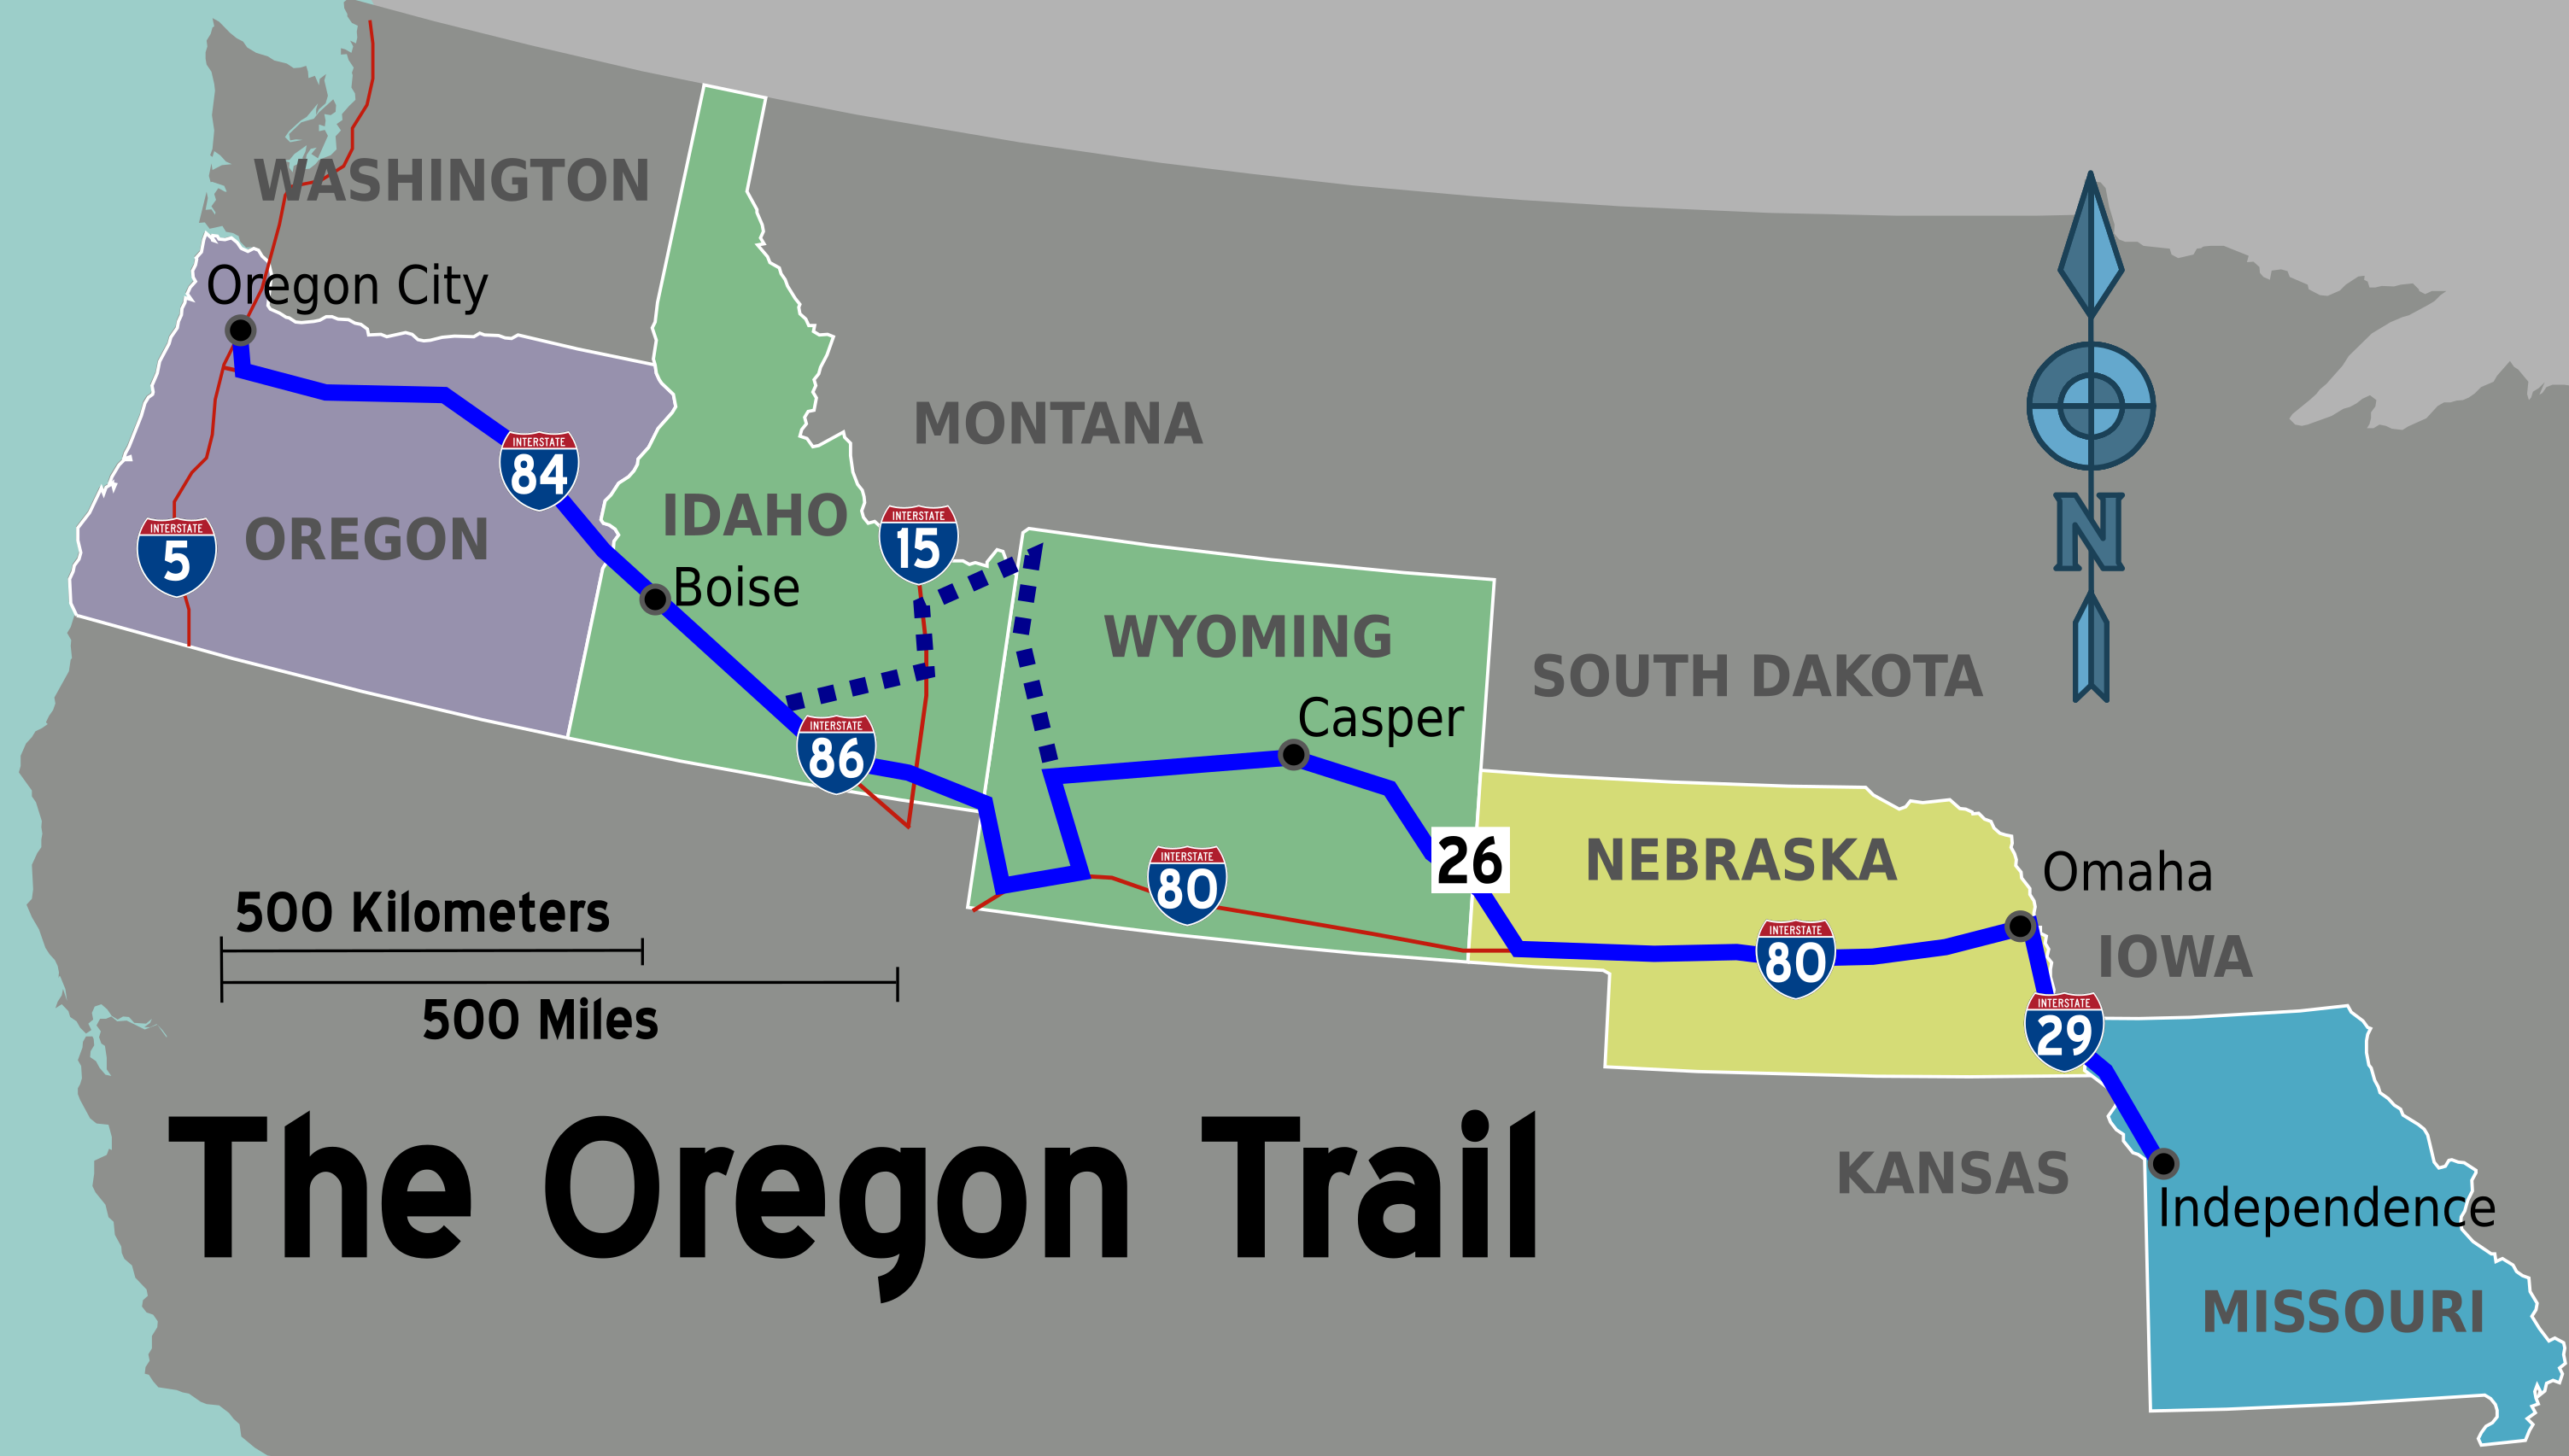 FileOregon Trail wikivoyage mappng Wikimedia Commons